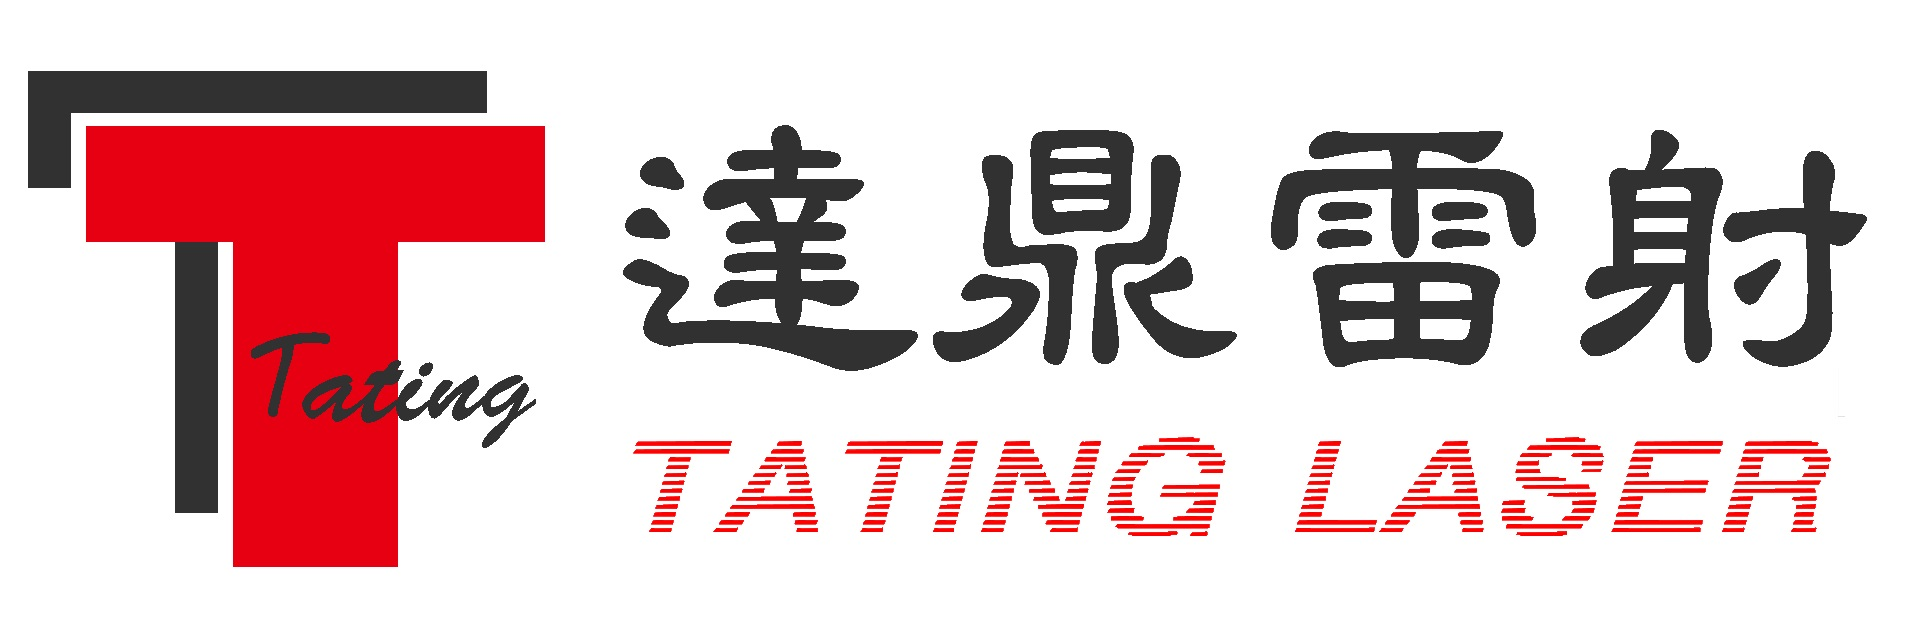 Tating Top Laser Co., Ltd